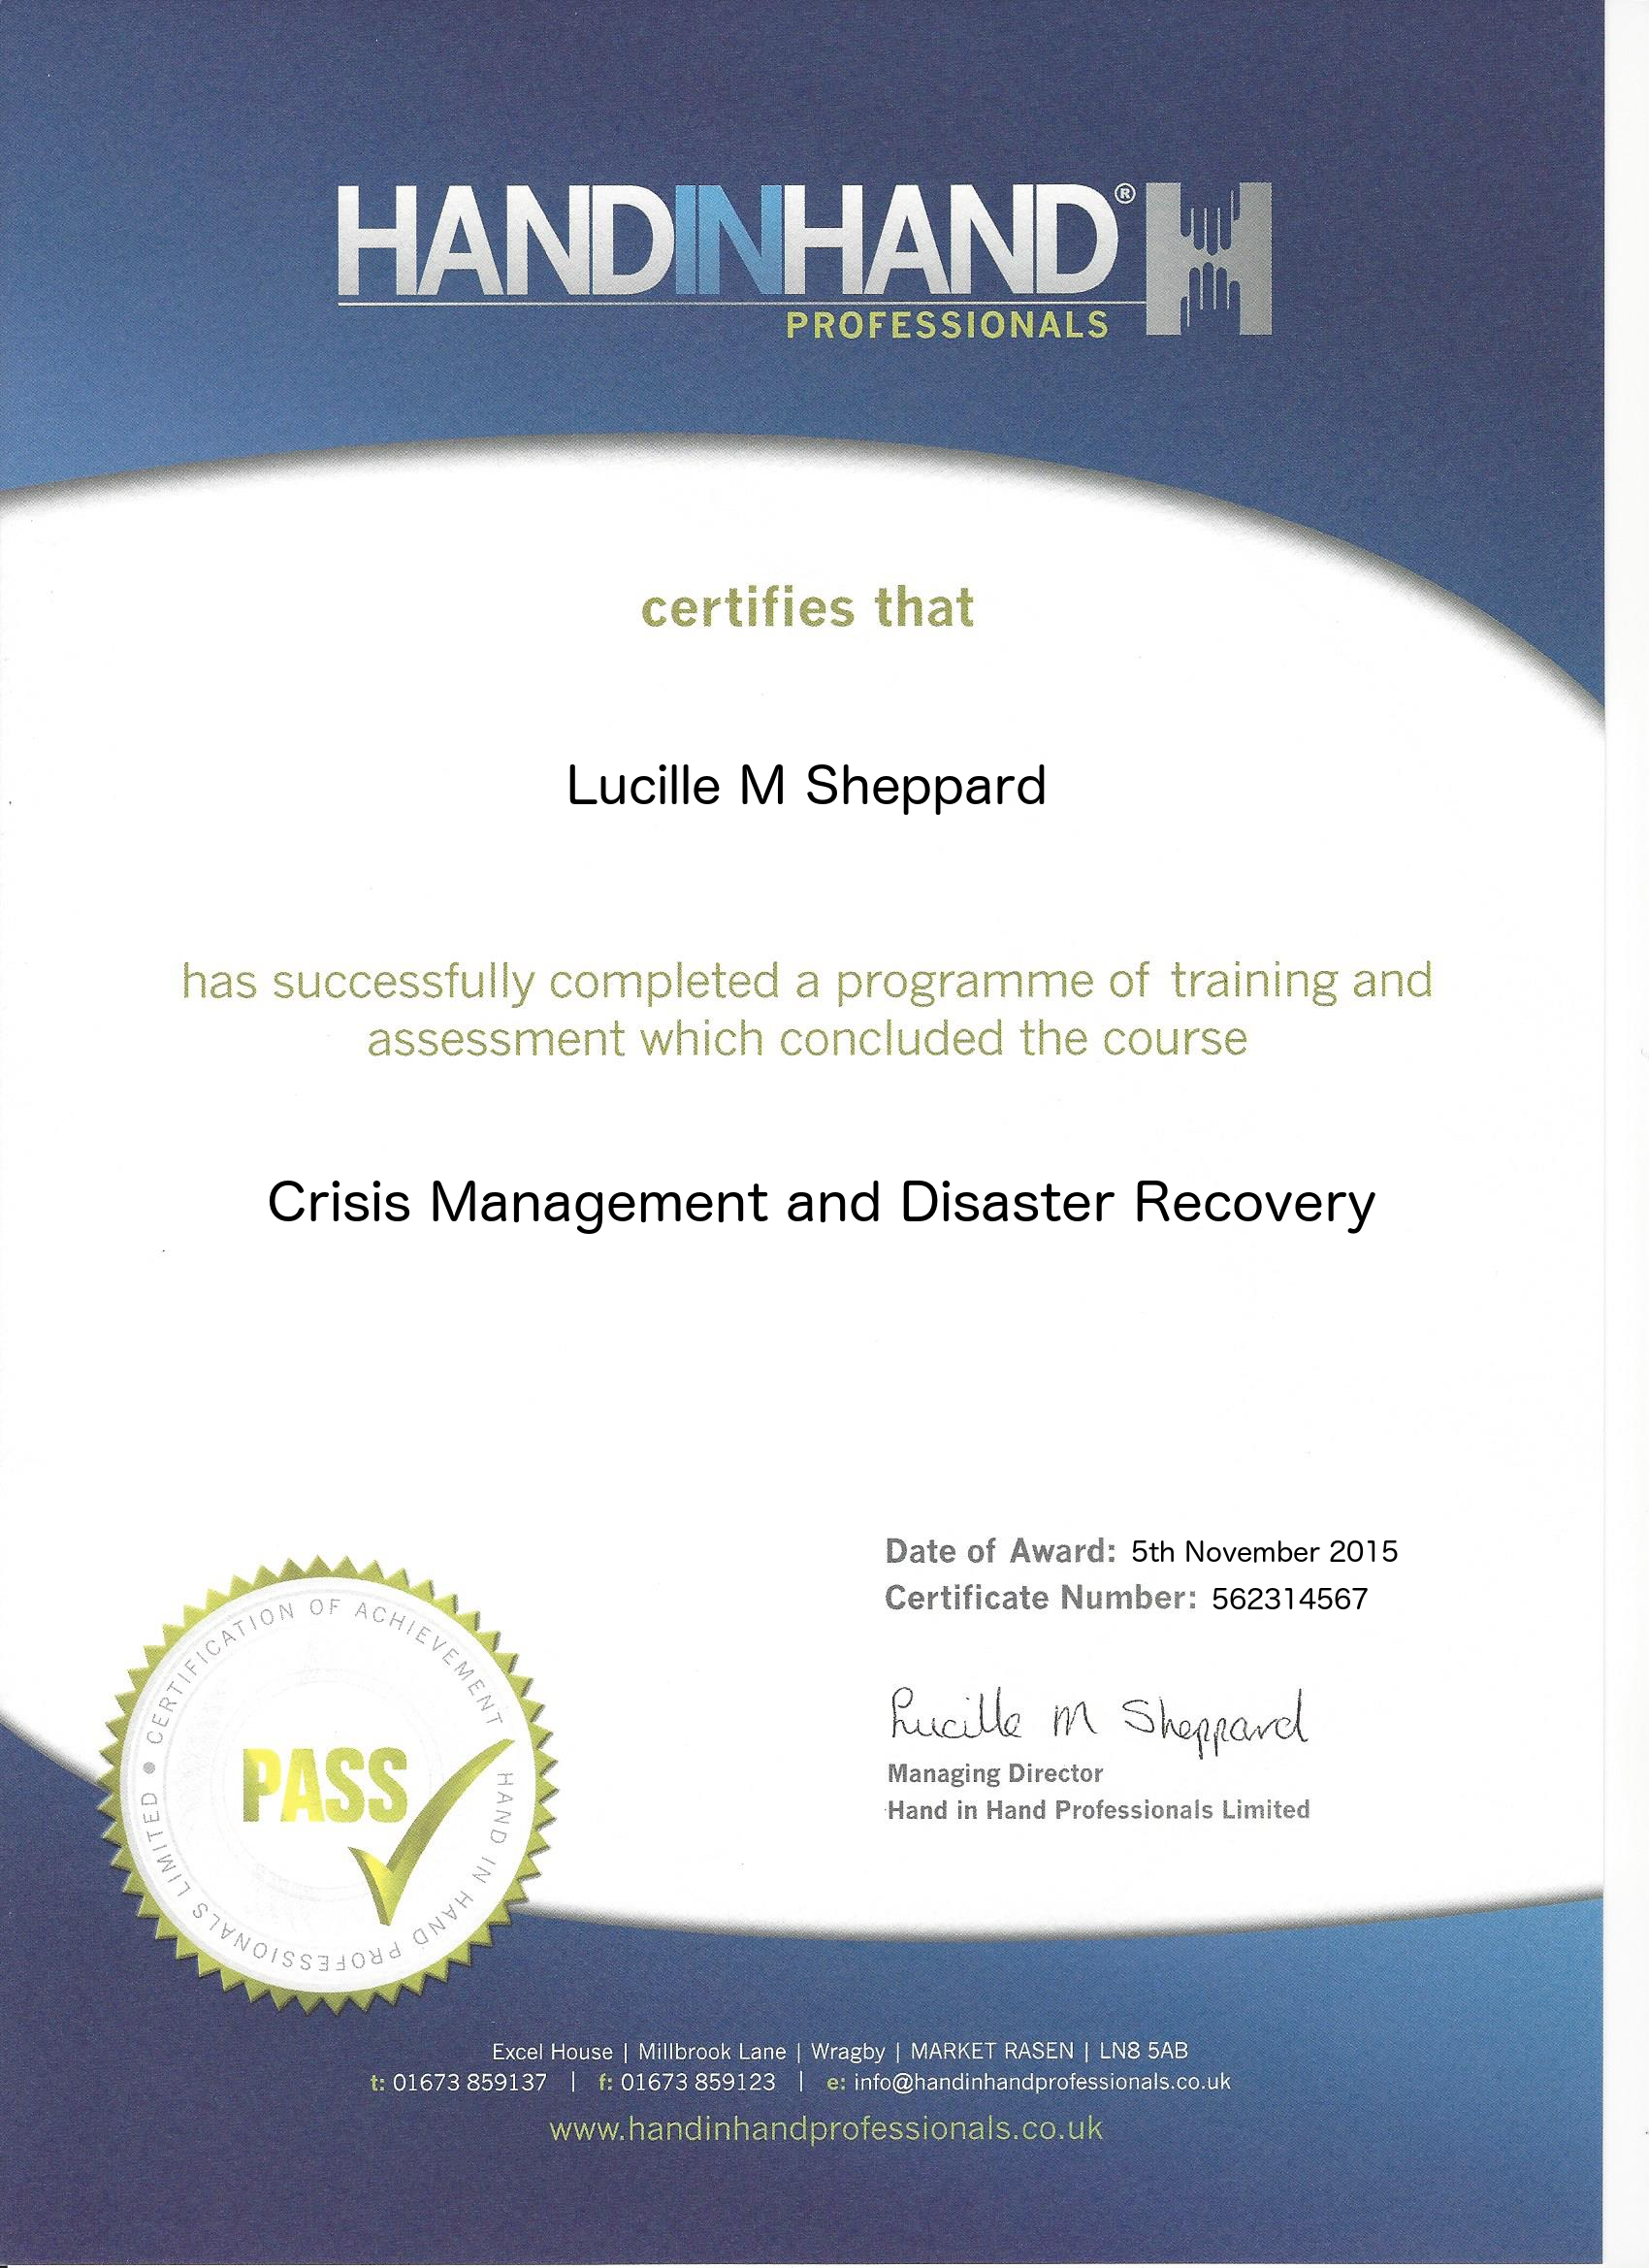 crisis management and disaster recovery course certificate